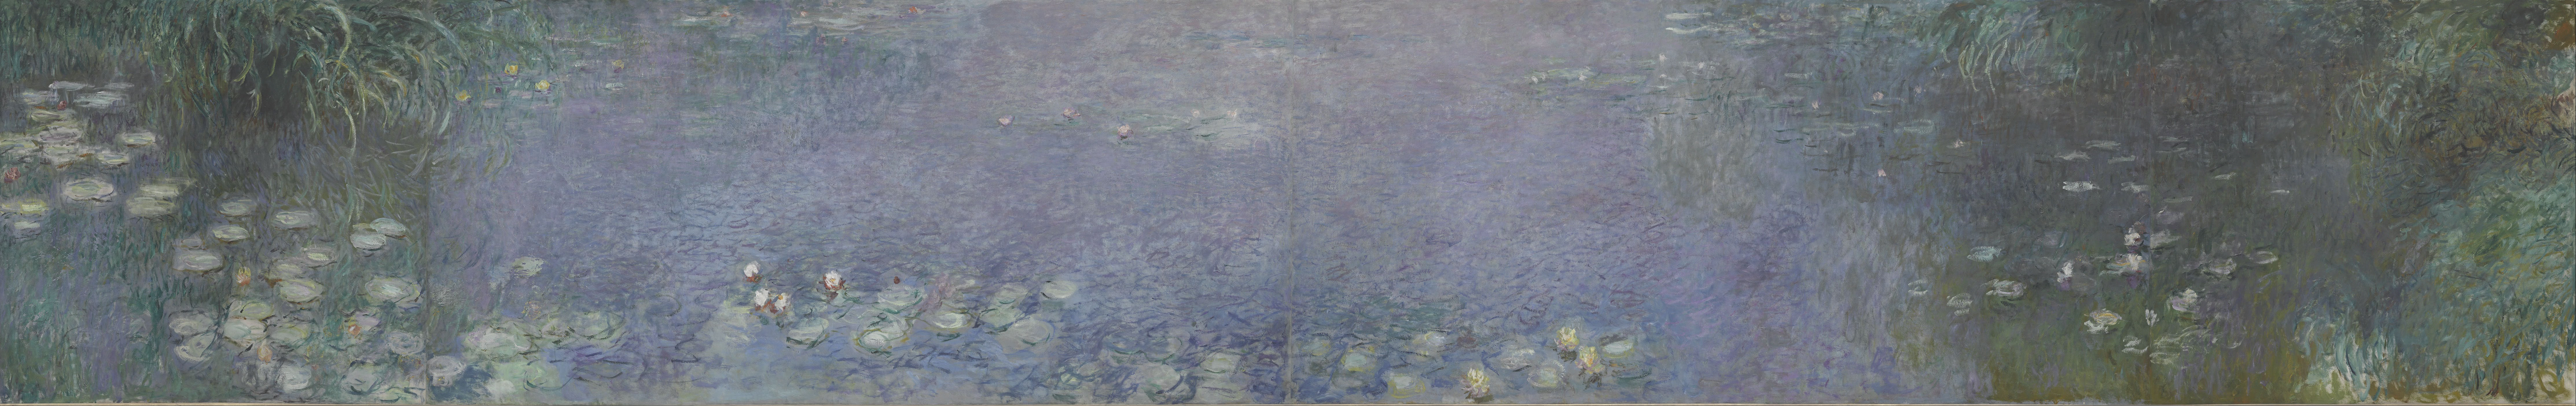 fileclaude monet the water lilies morning google art projectjpg - Monet Coloring Pages Water Lilies